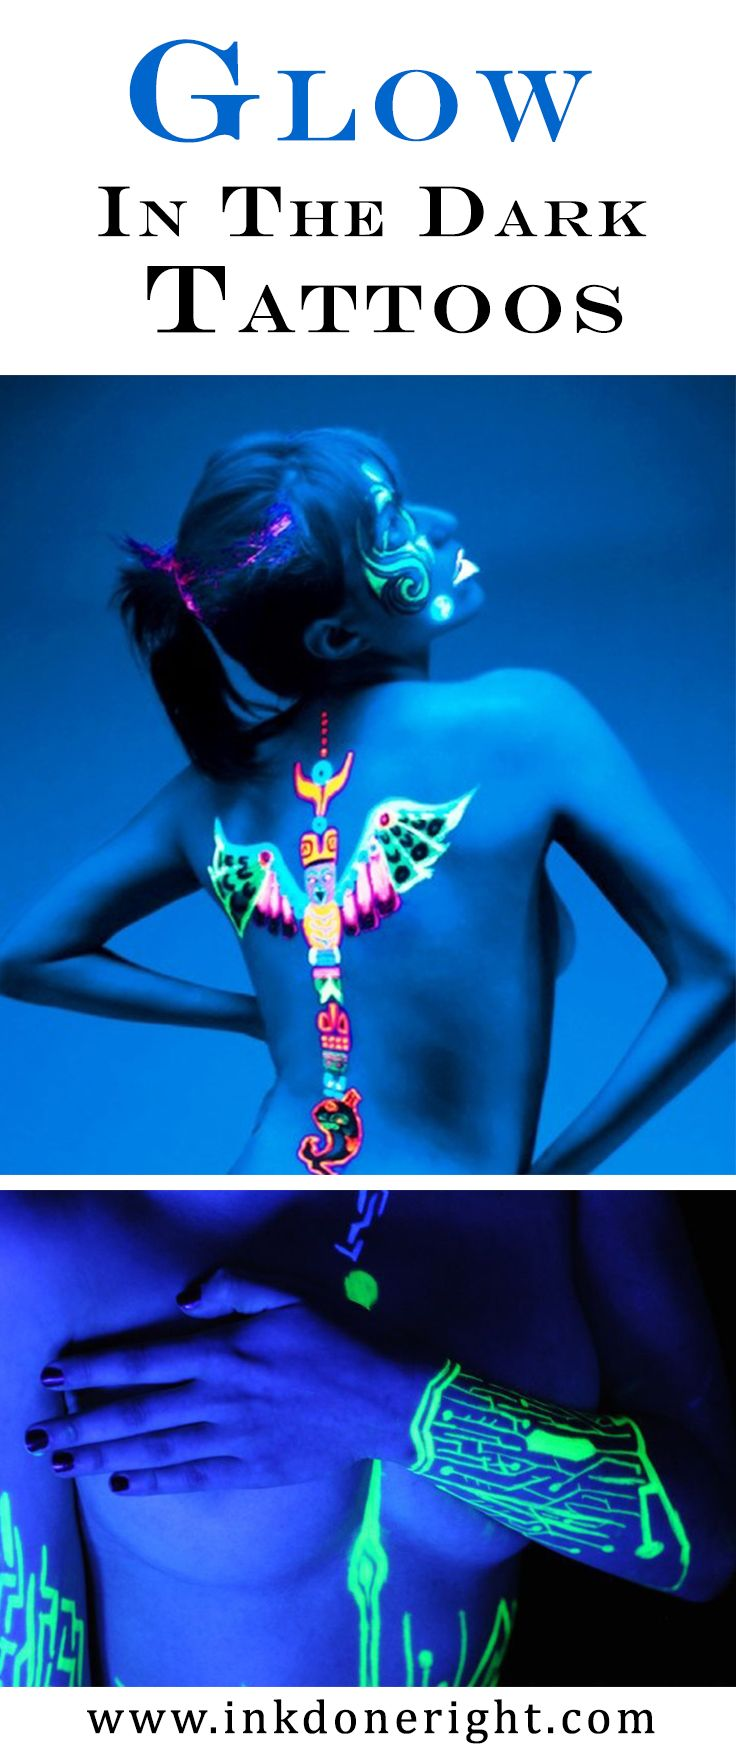 The Glow in the Dark Tattoos Trend  Glow in the dark tattoos are the latest innovation in tattooing technology, with their bright fluorescent colors surprising bedrooms and dance floors across the world. But new innovations come with both risks and rewards, and if you are considering getting a glow in the dark tattoo, there are some facts you need to know about.  #‎inkdoneright #‎tattoo #‎tattoos #‎inked #‎art #‎inkedgirls #‎tattooed #‎tattooedgirls